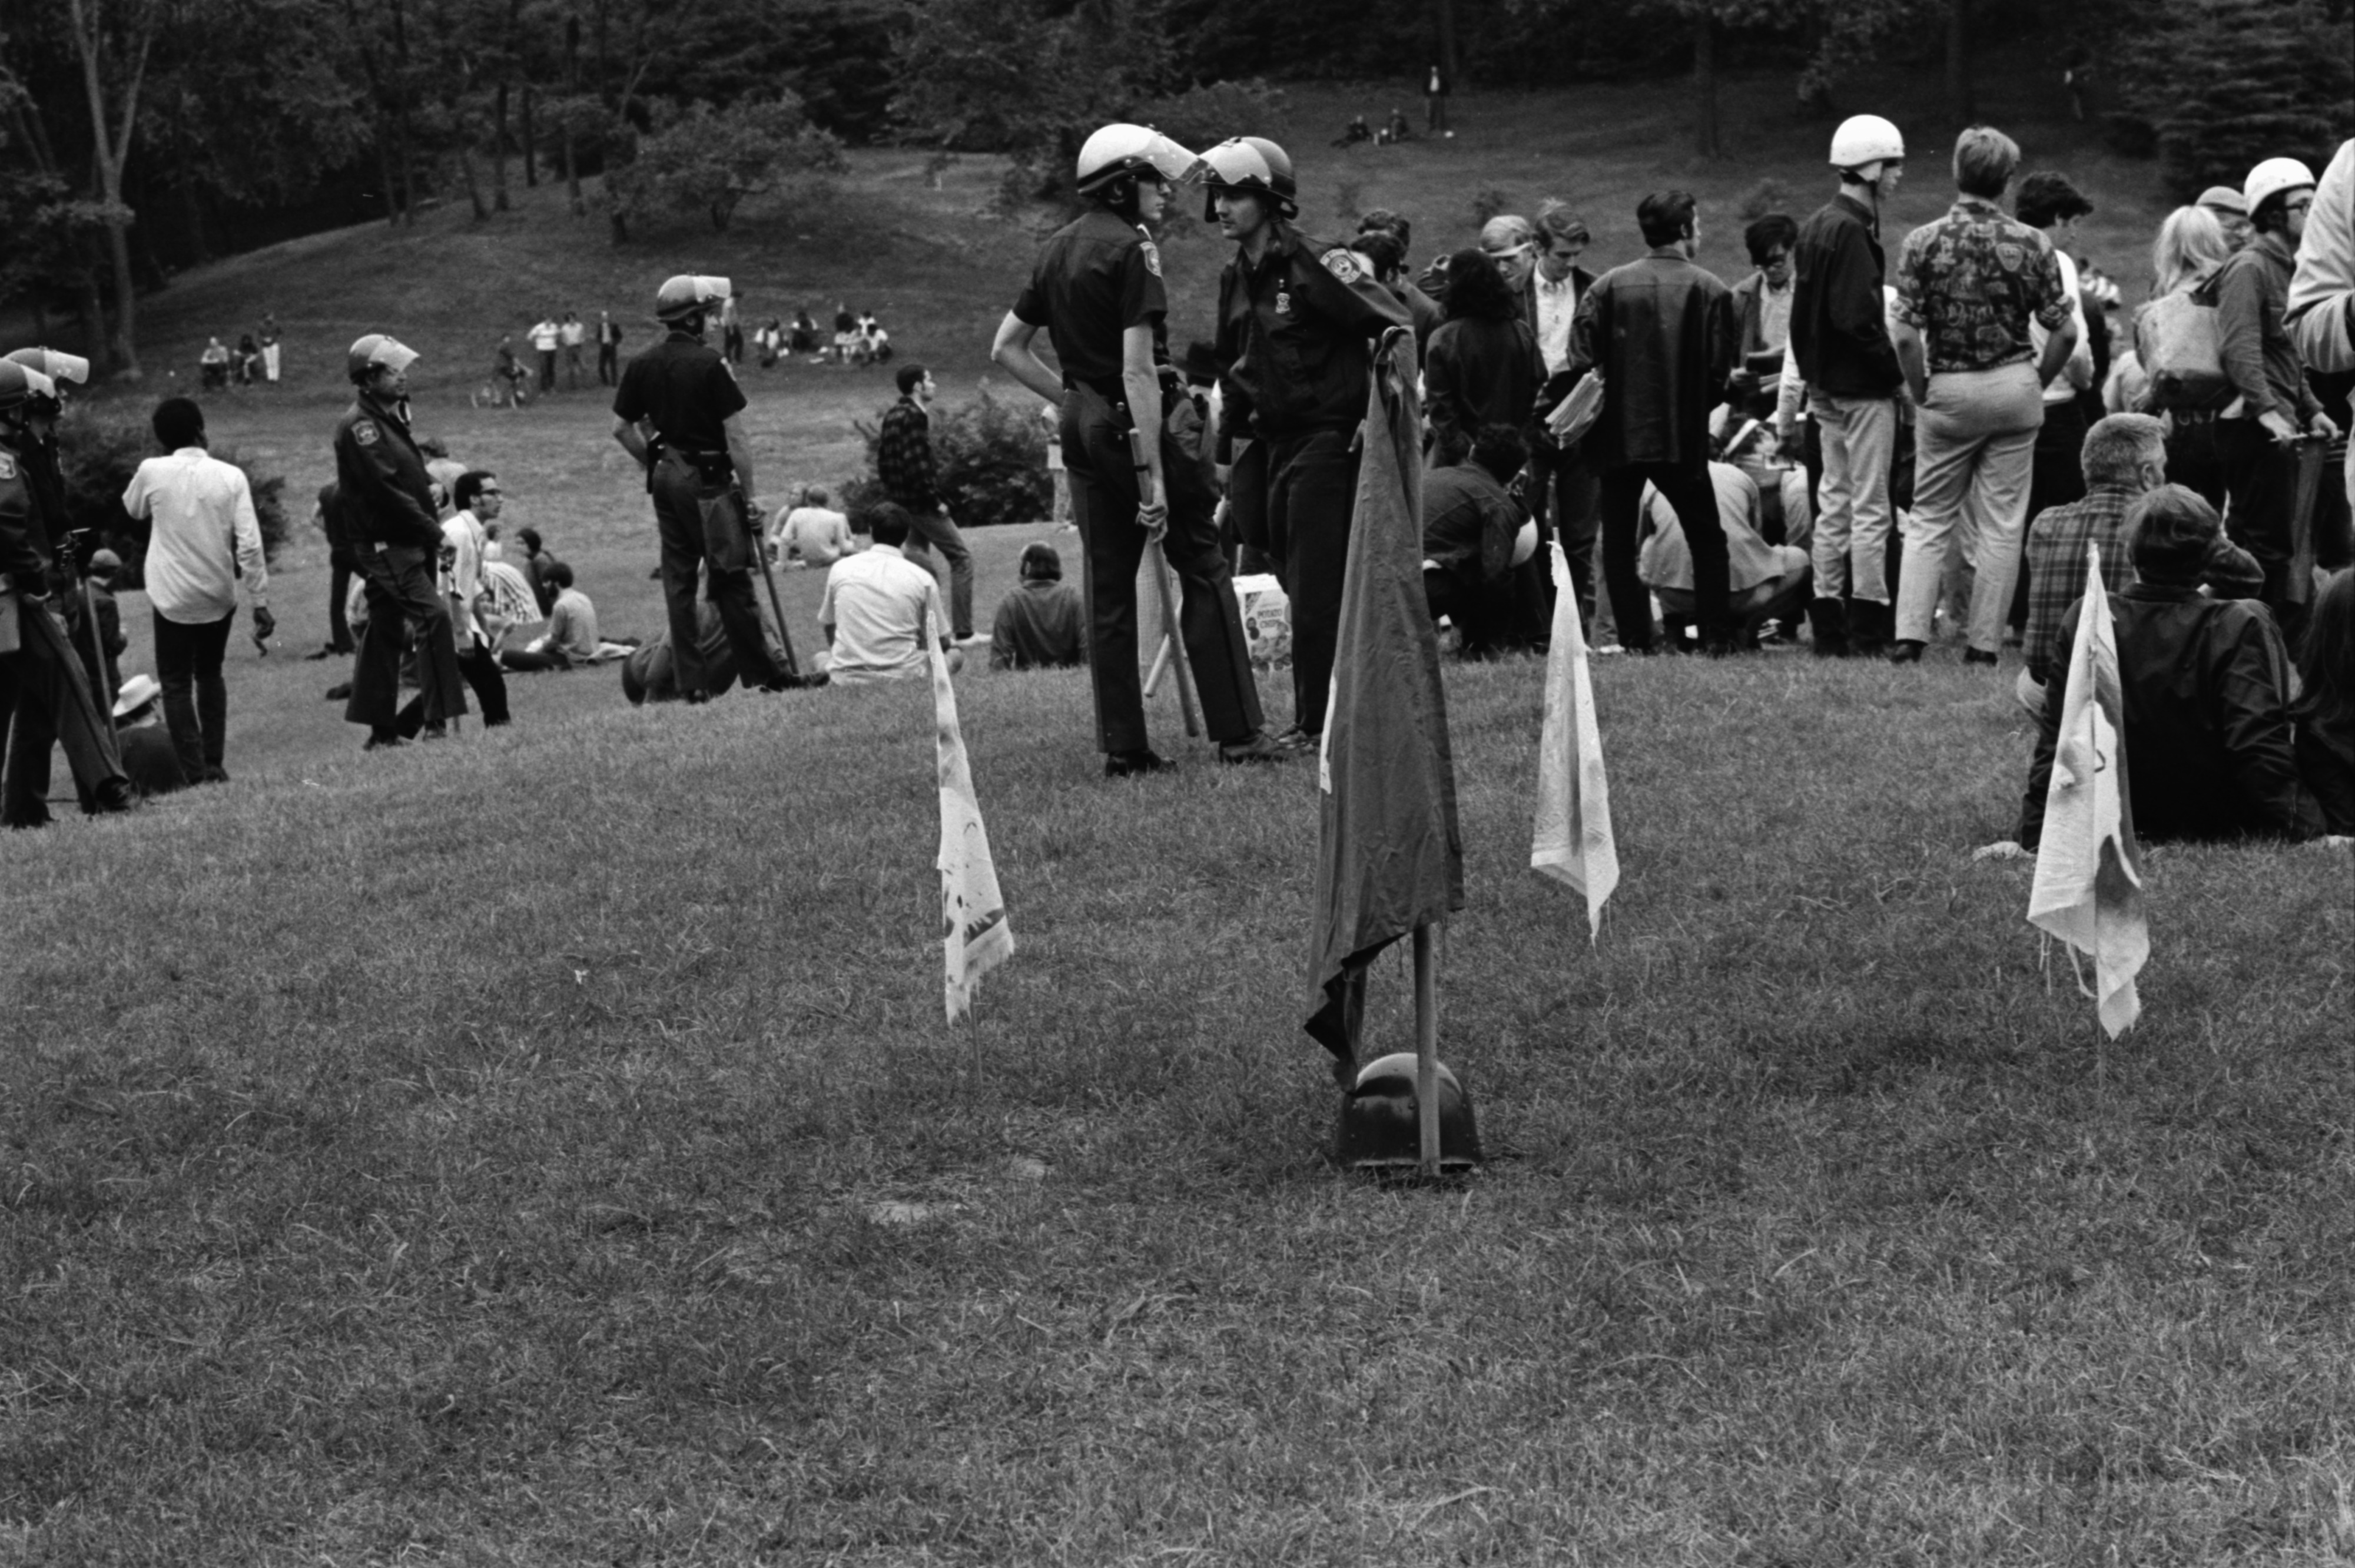 Police Patrol the Peace Picnic at the Arboretum, July 1969 image